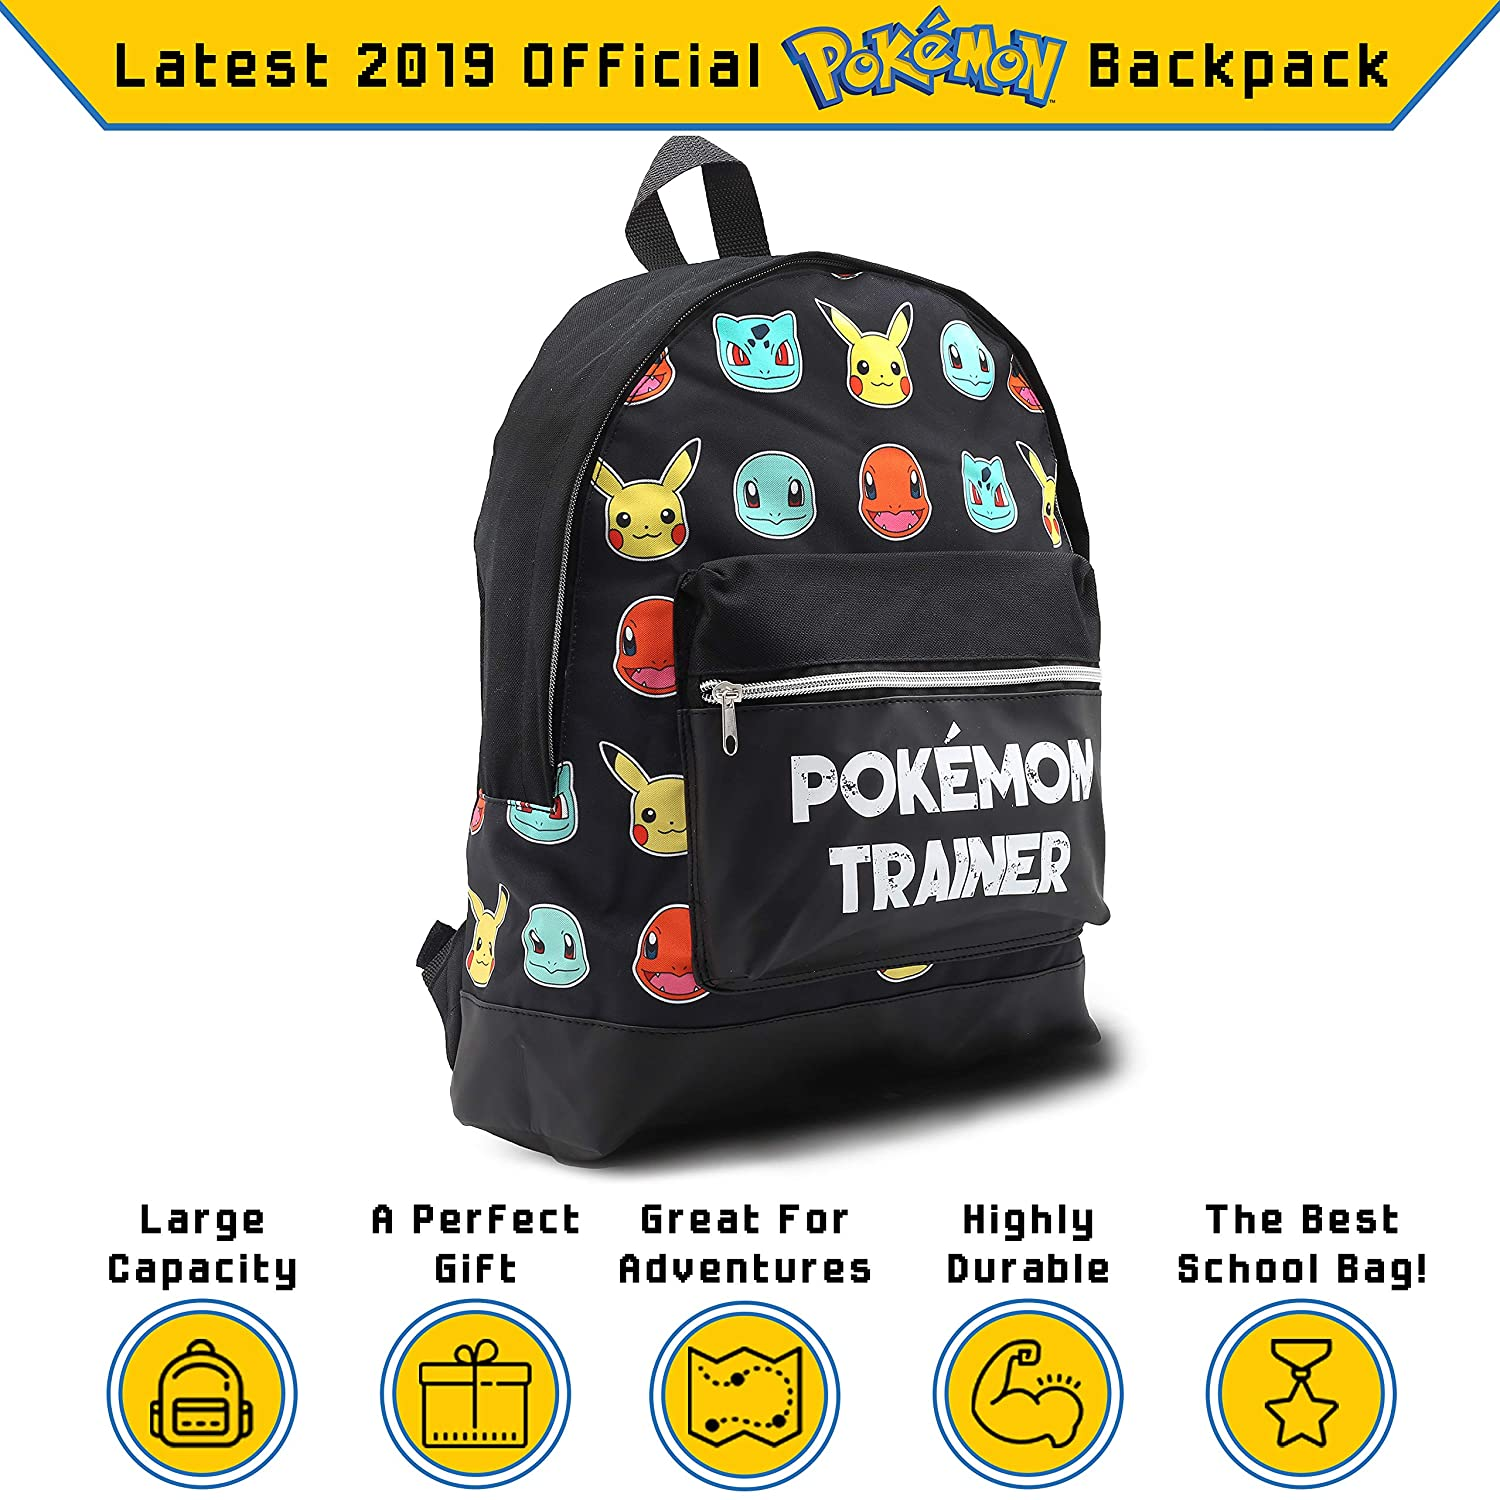 76539273f5 Cartable Pokemon Primaire Sac a Dos Enfant Garcon Fille College Gymnase  avec Let's Go Pikachu Bulbasaur Charmander: Amazon.fr: Bagages